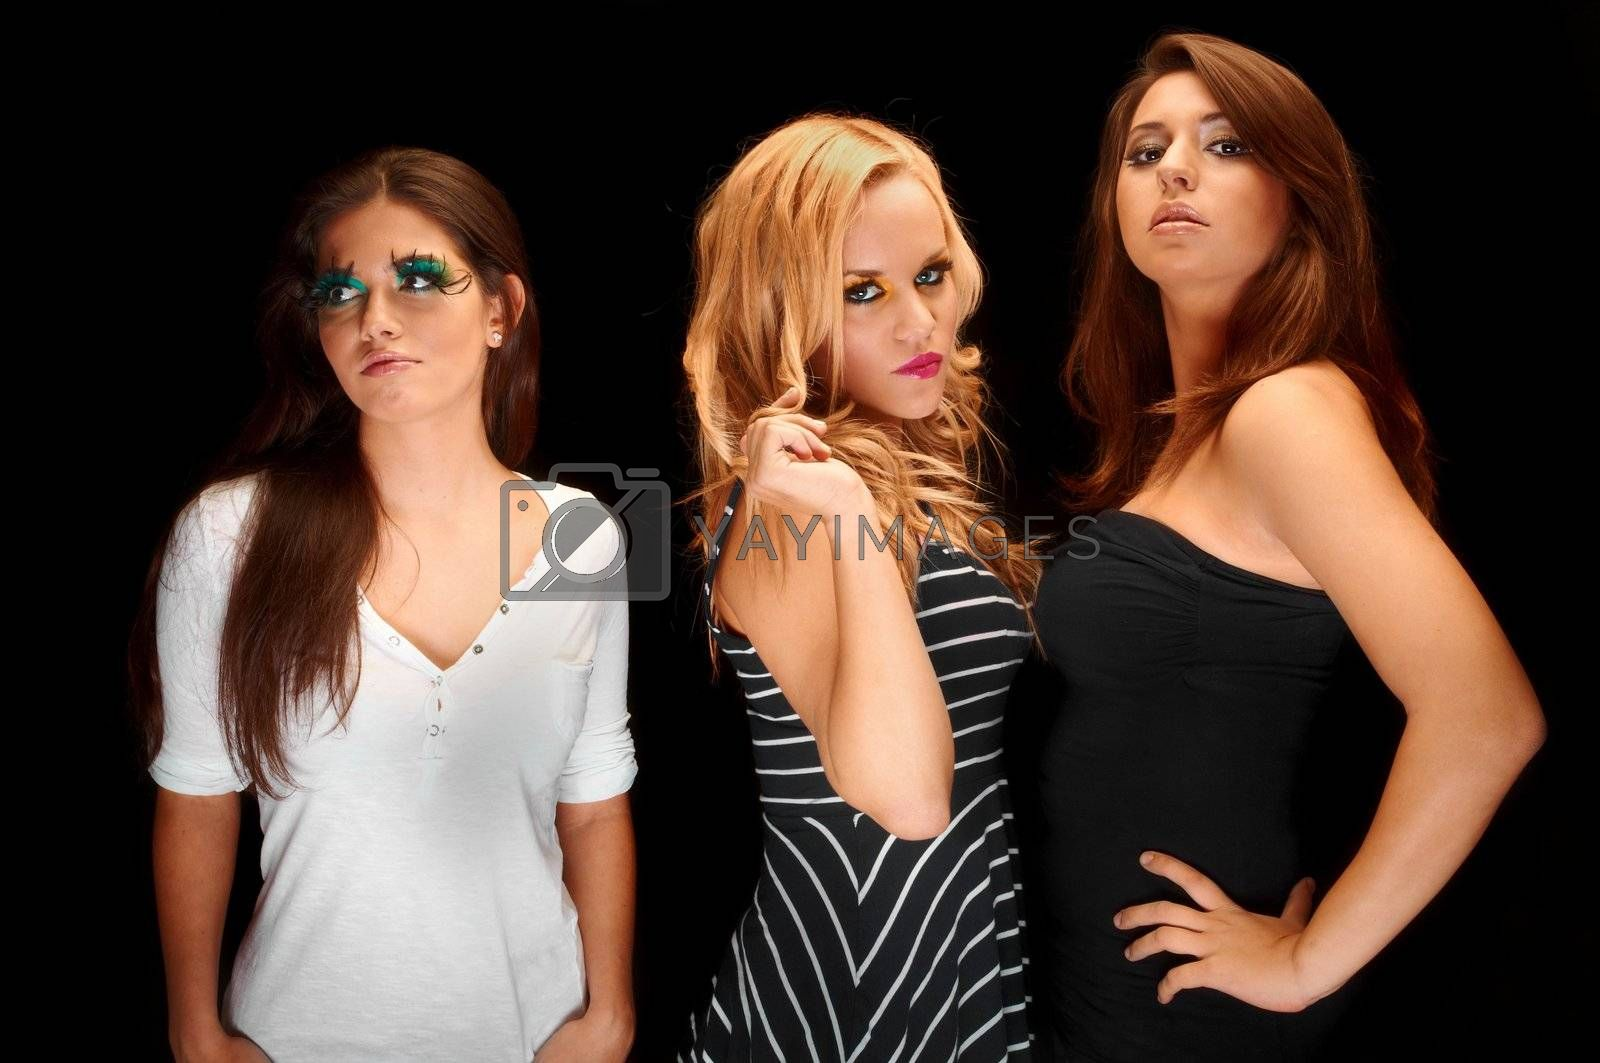 A group of young models against dark background a the studio